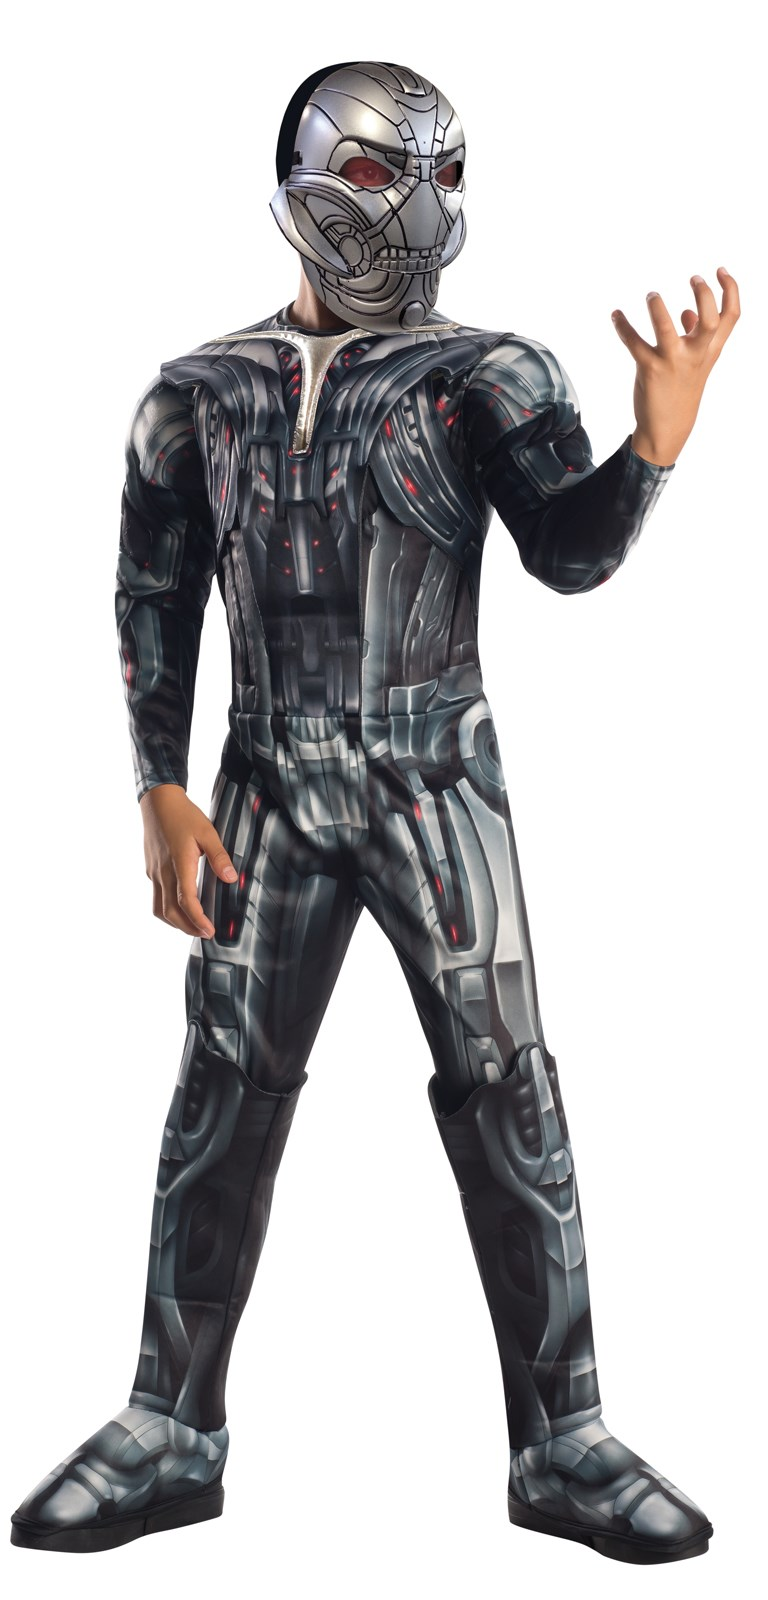 Avengers 2 - Age of Ultron: Deluxe Ultron Kids Costume